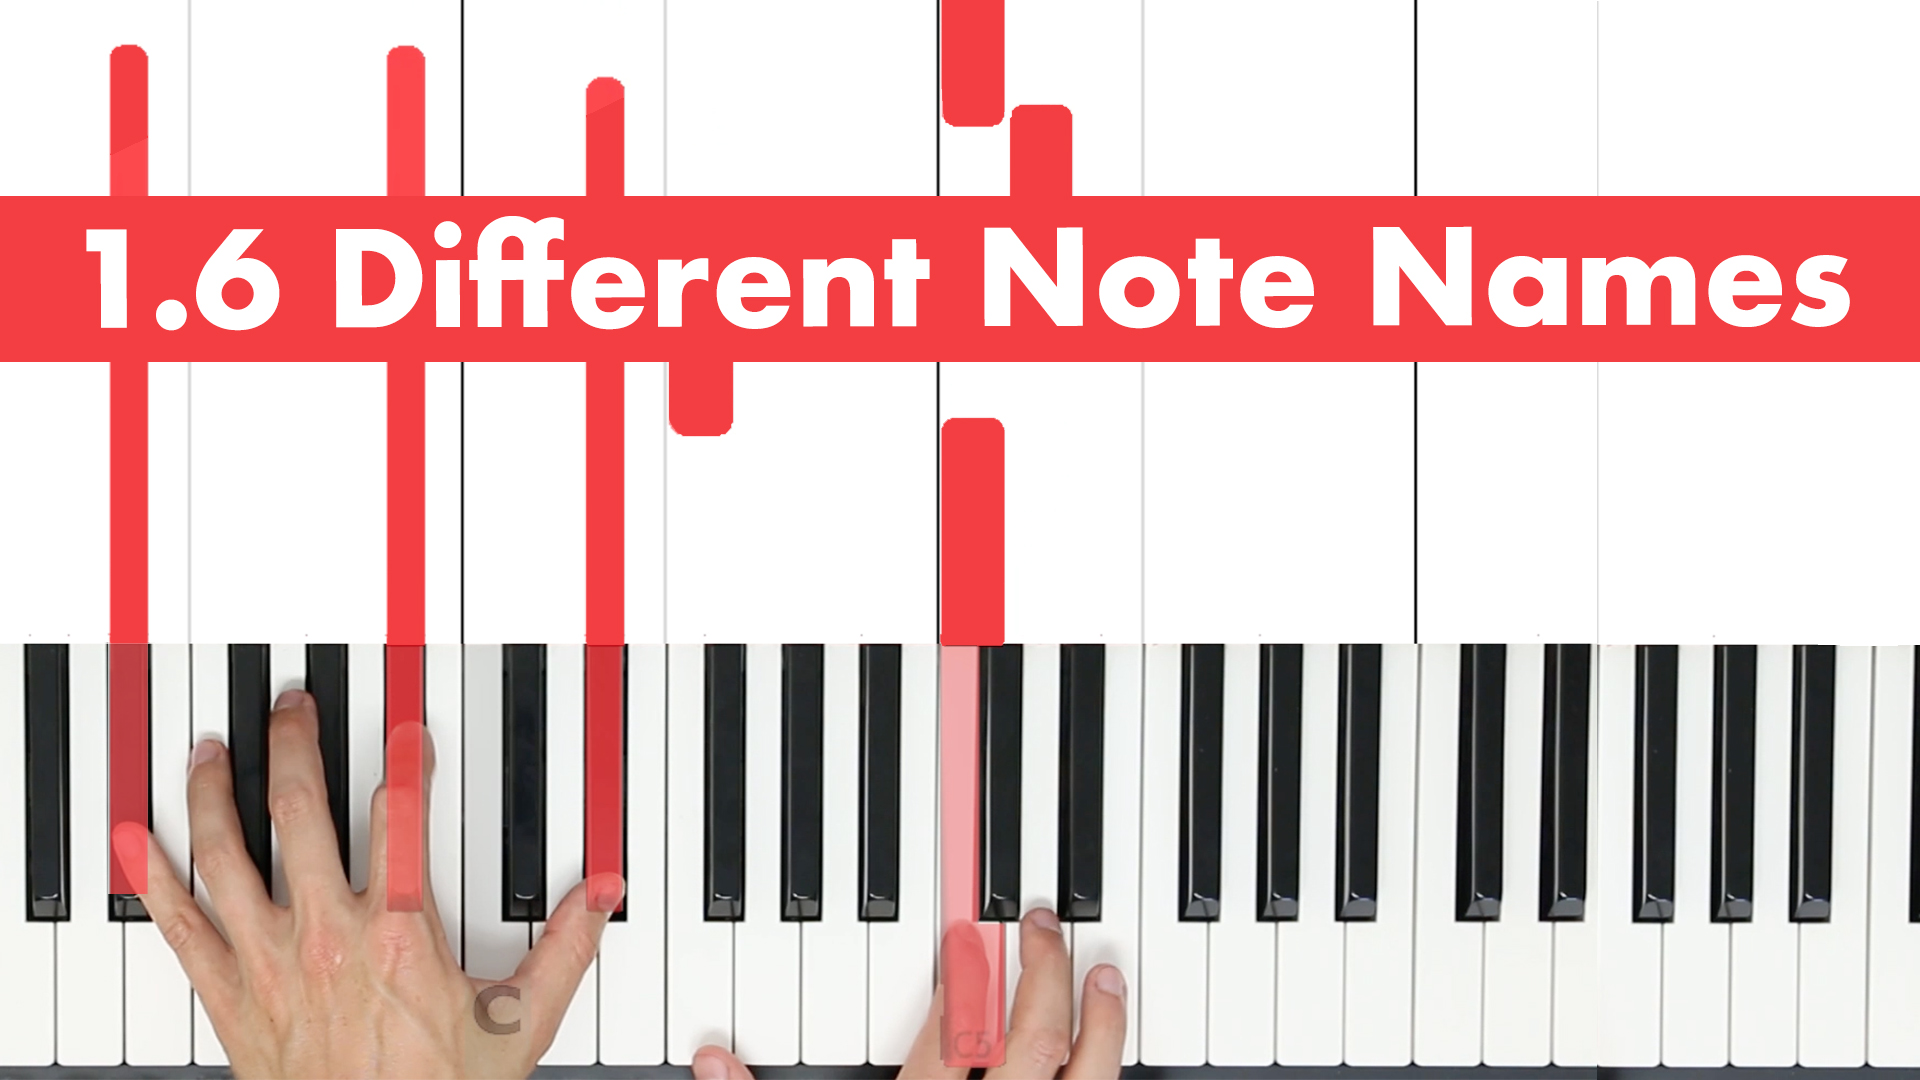 1.6 Different Note Names